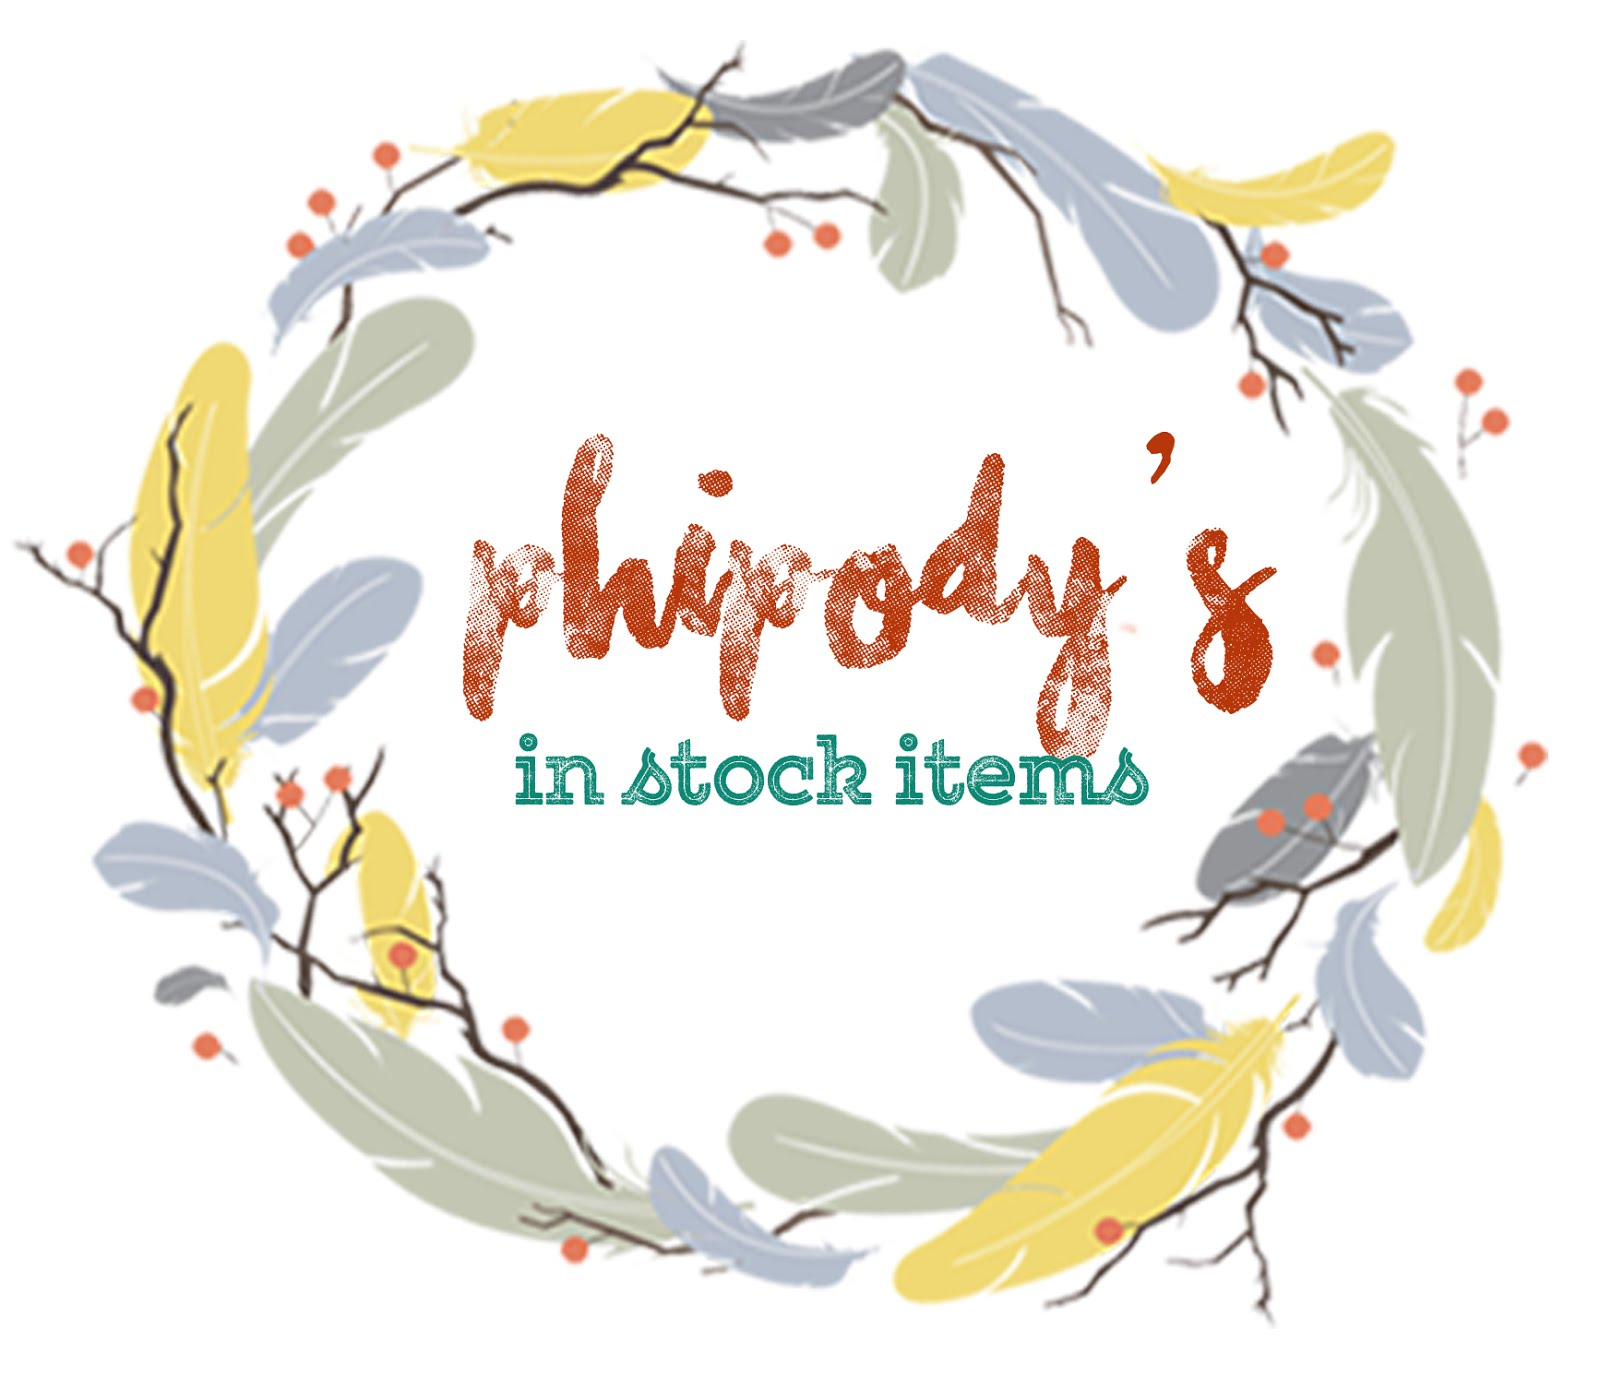 Phipody's Instock Items